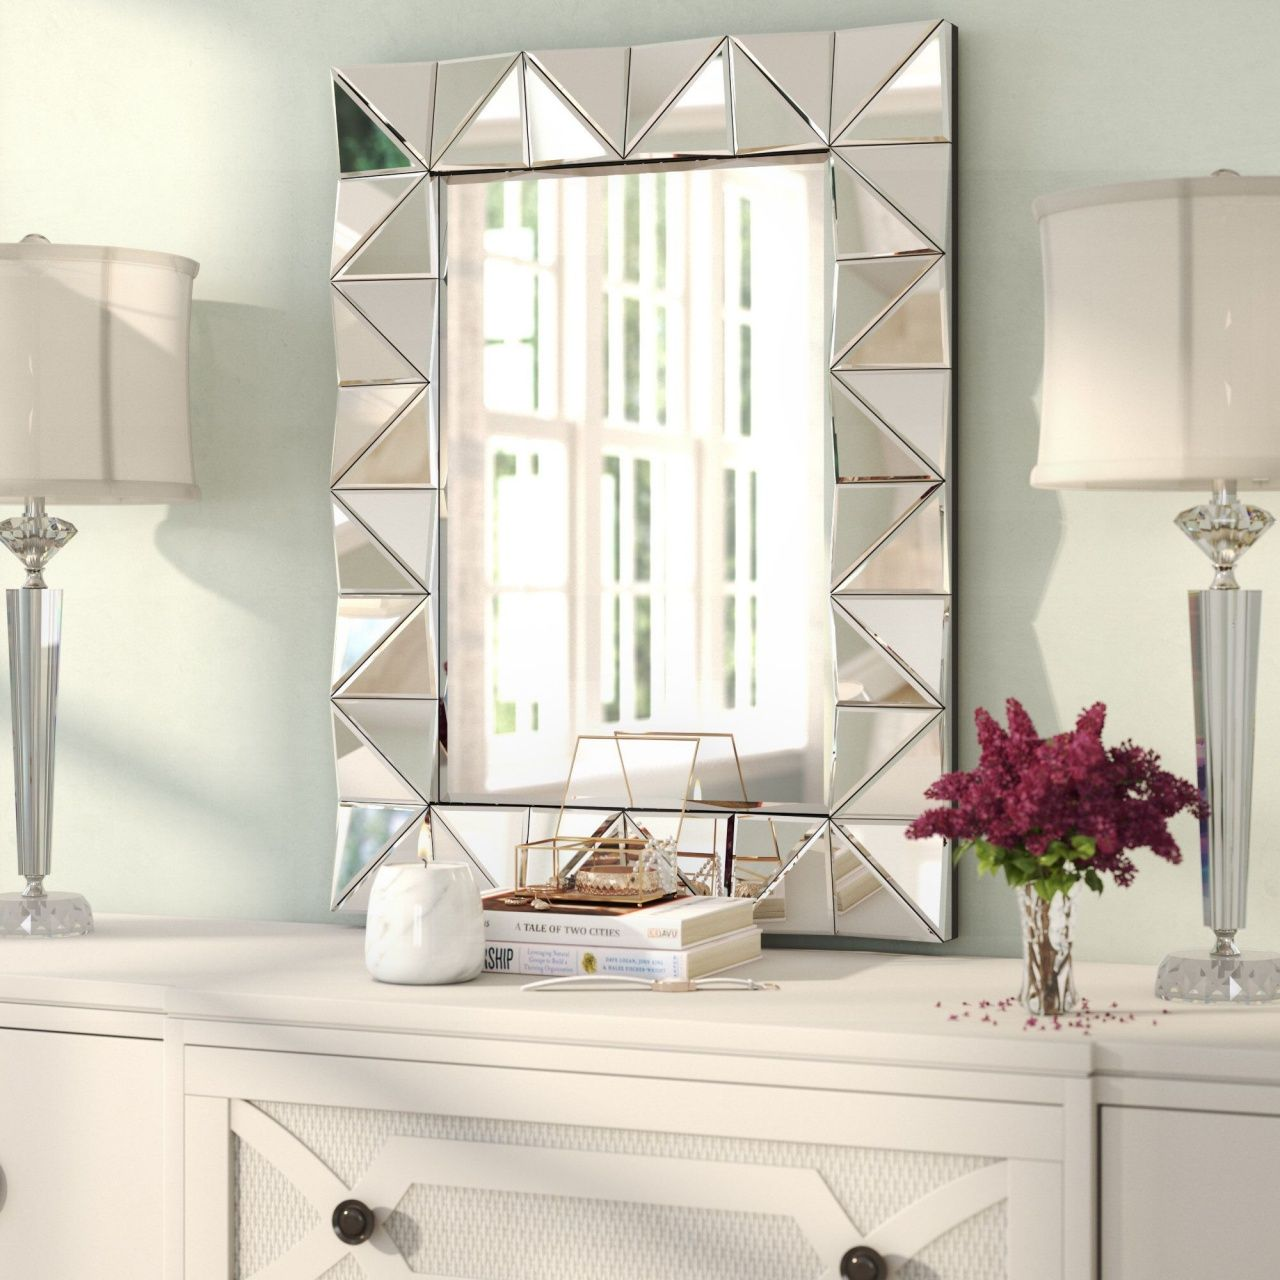 Pier One Mirrors and Wall Decor in 2020 | Interior accents ...